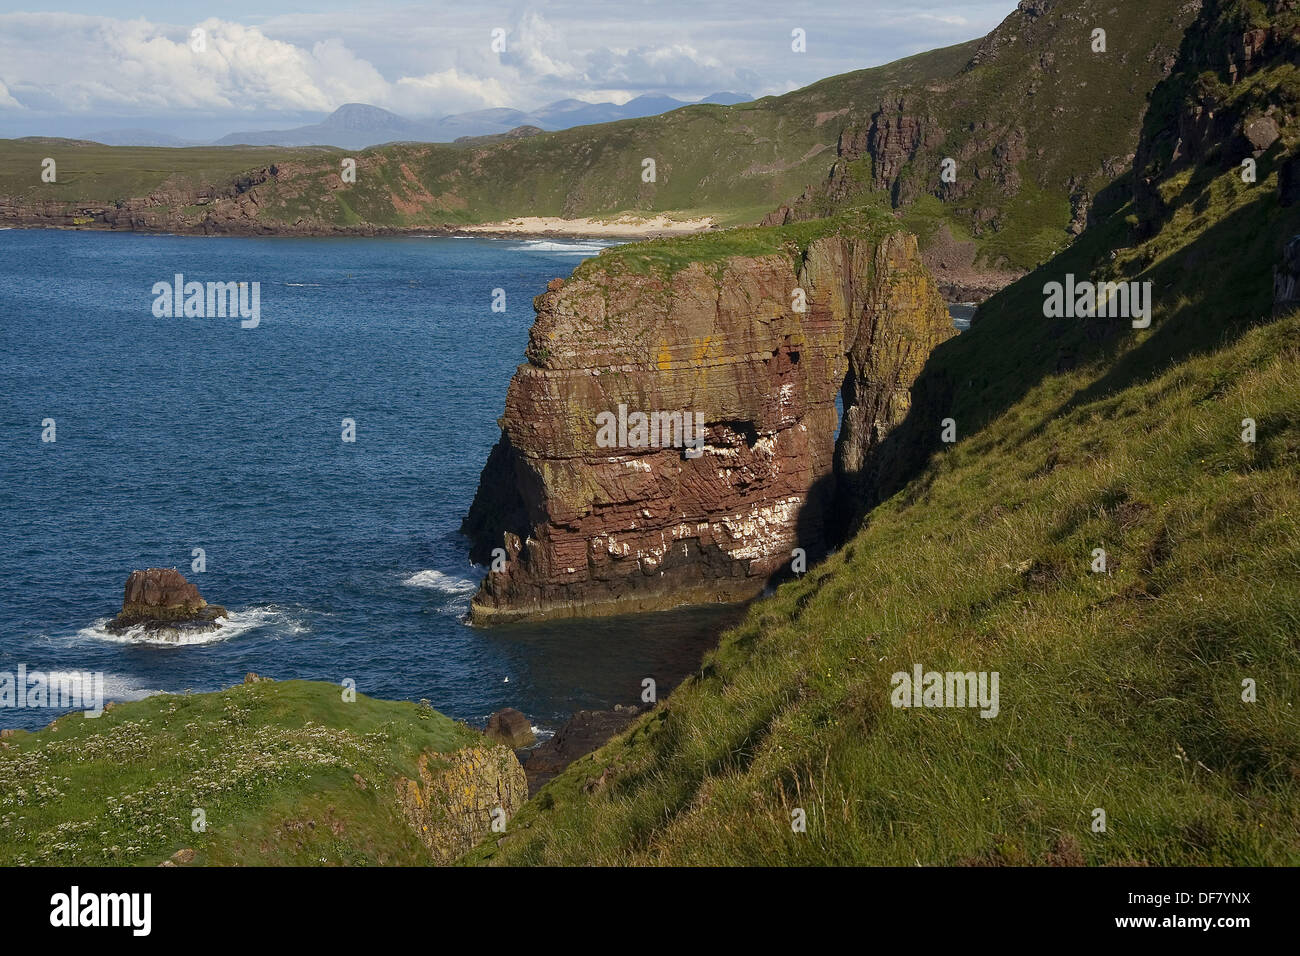 Rubha Reidh, Camas Mor, Gairloch, Northwest Seaboard, Northwest Highlands, Scotland, UK - Stock Image